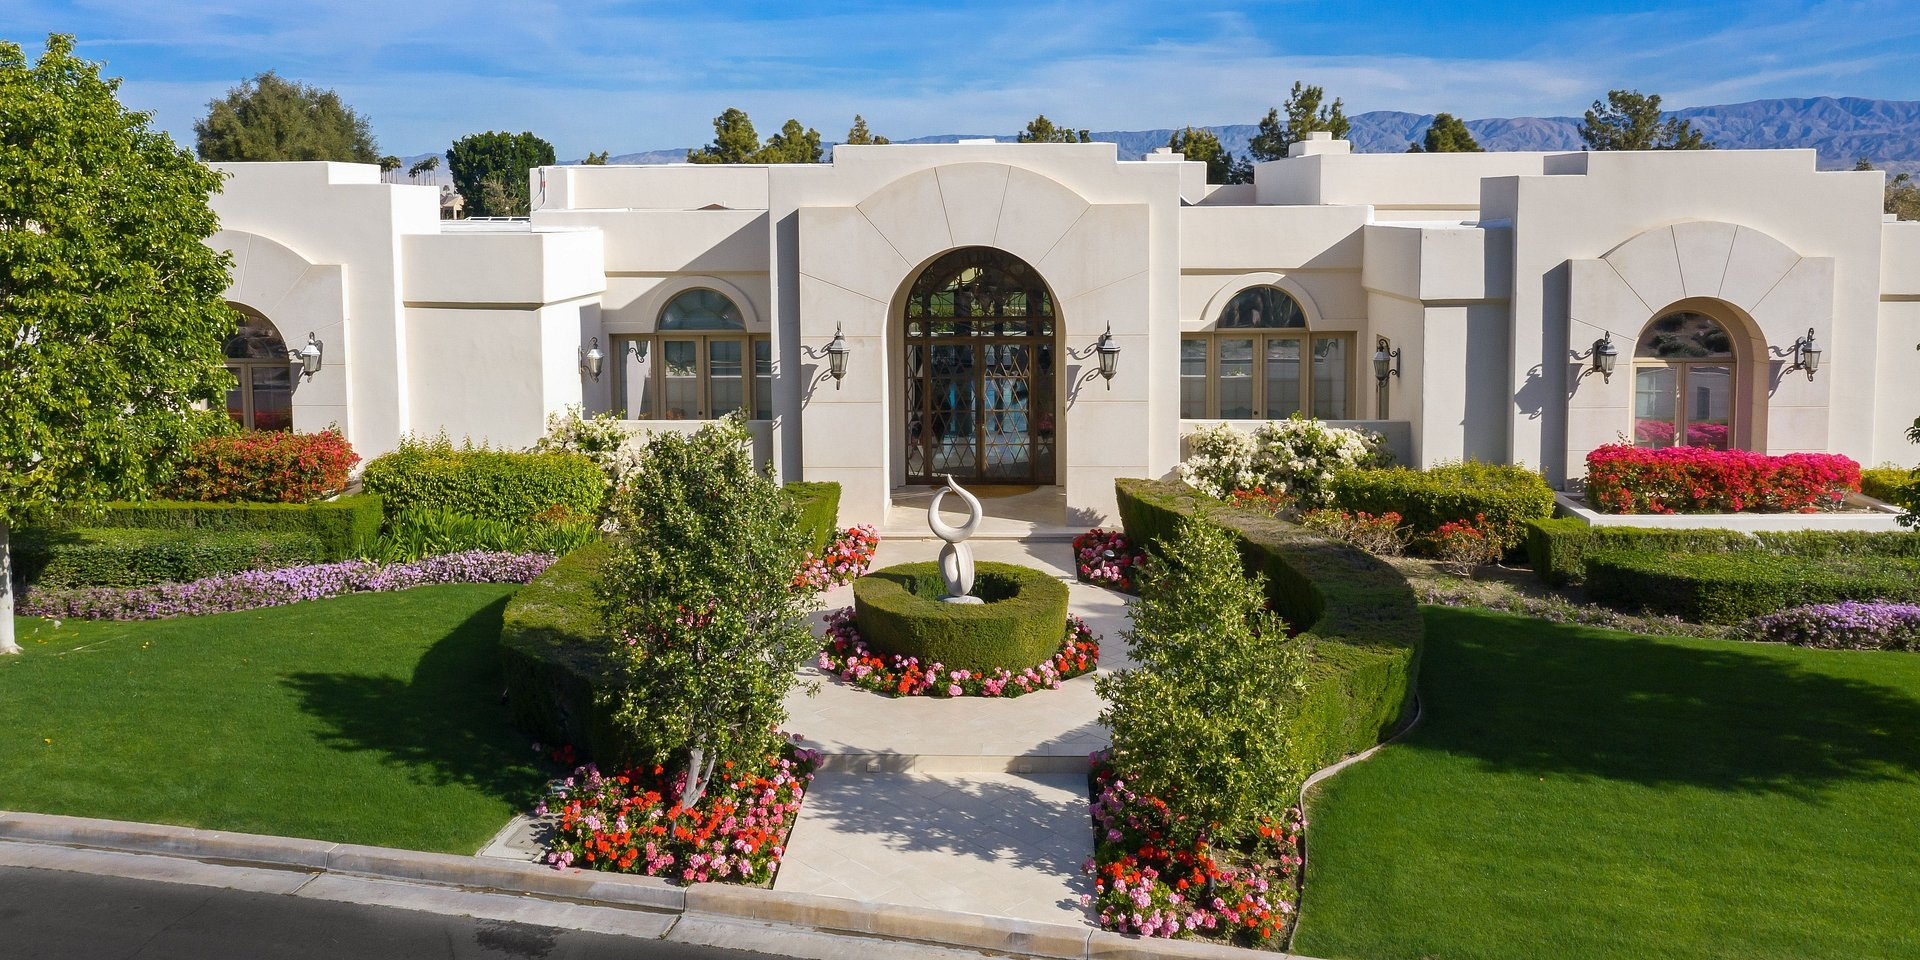 Coldwell Banker Realty Lists an Indian Wells Property for $4.495 Million